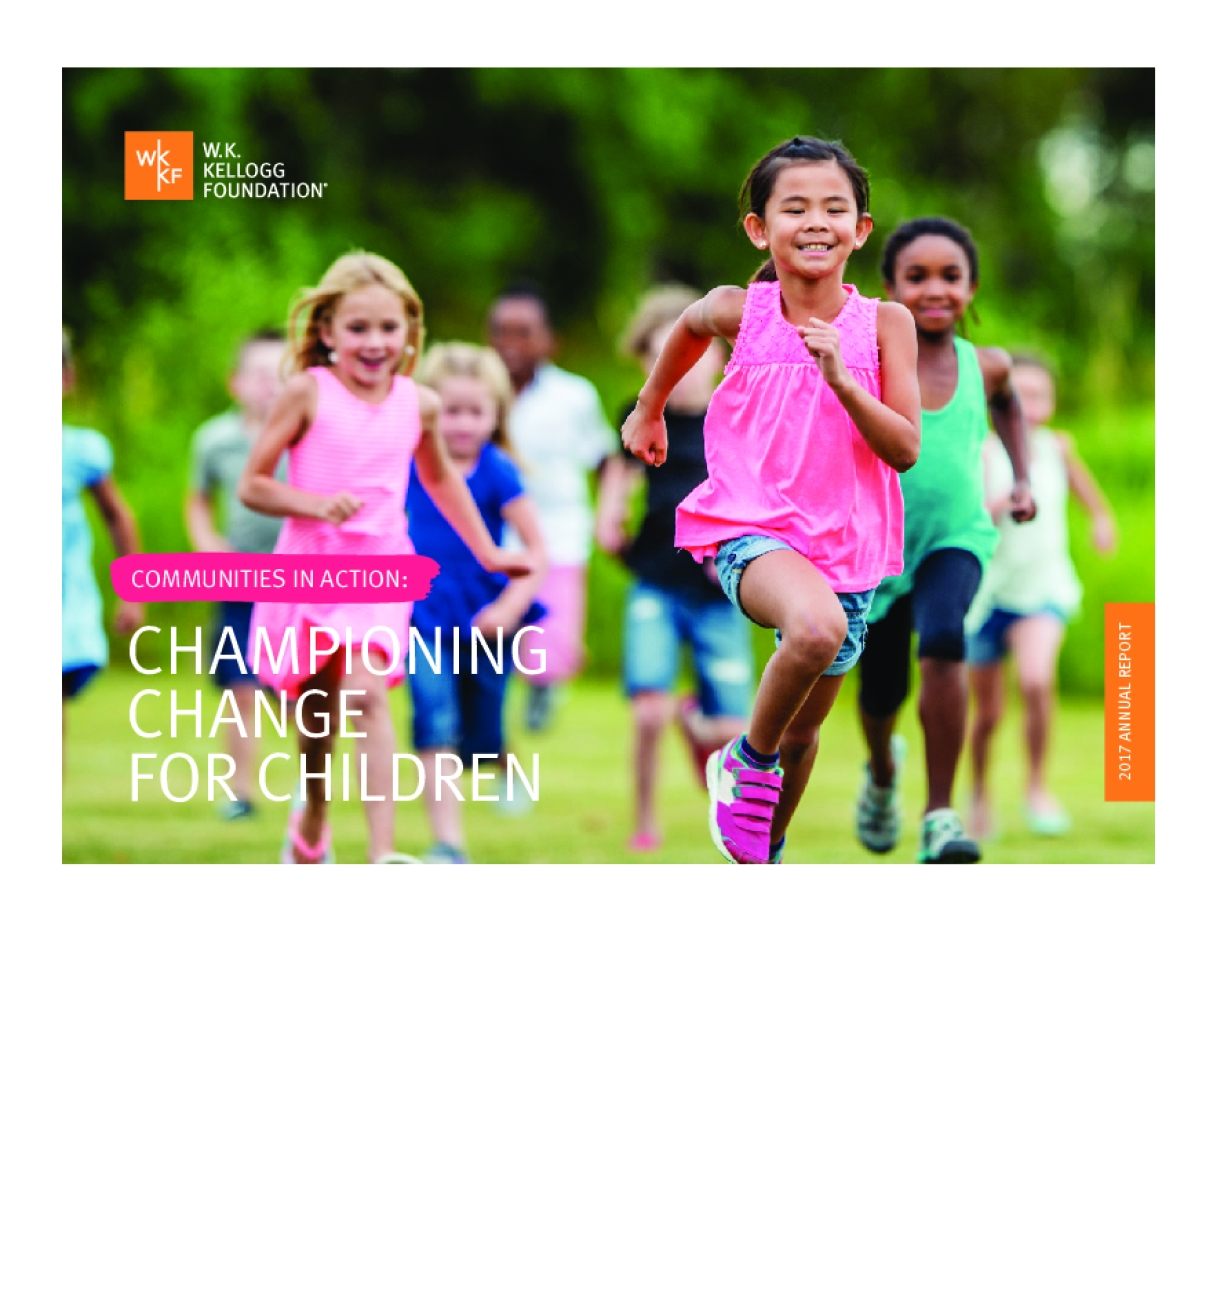 Communities in Action: Championing Change for Children, 2017 W.K. Kellogg Foundation Annual Report